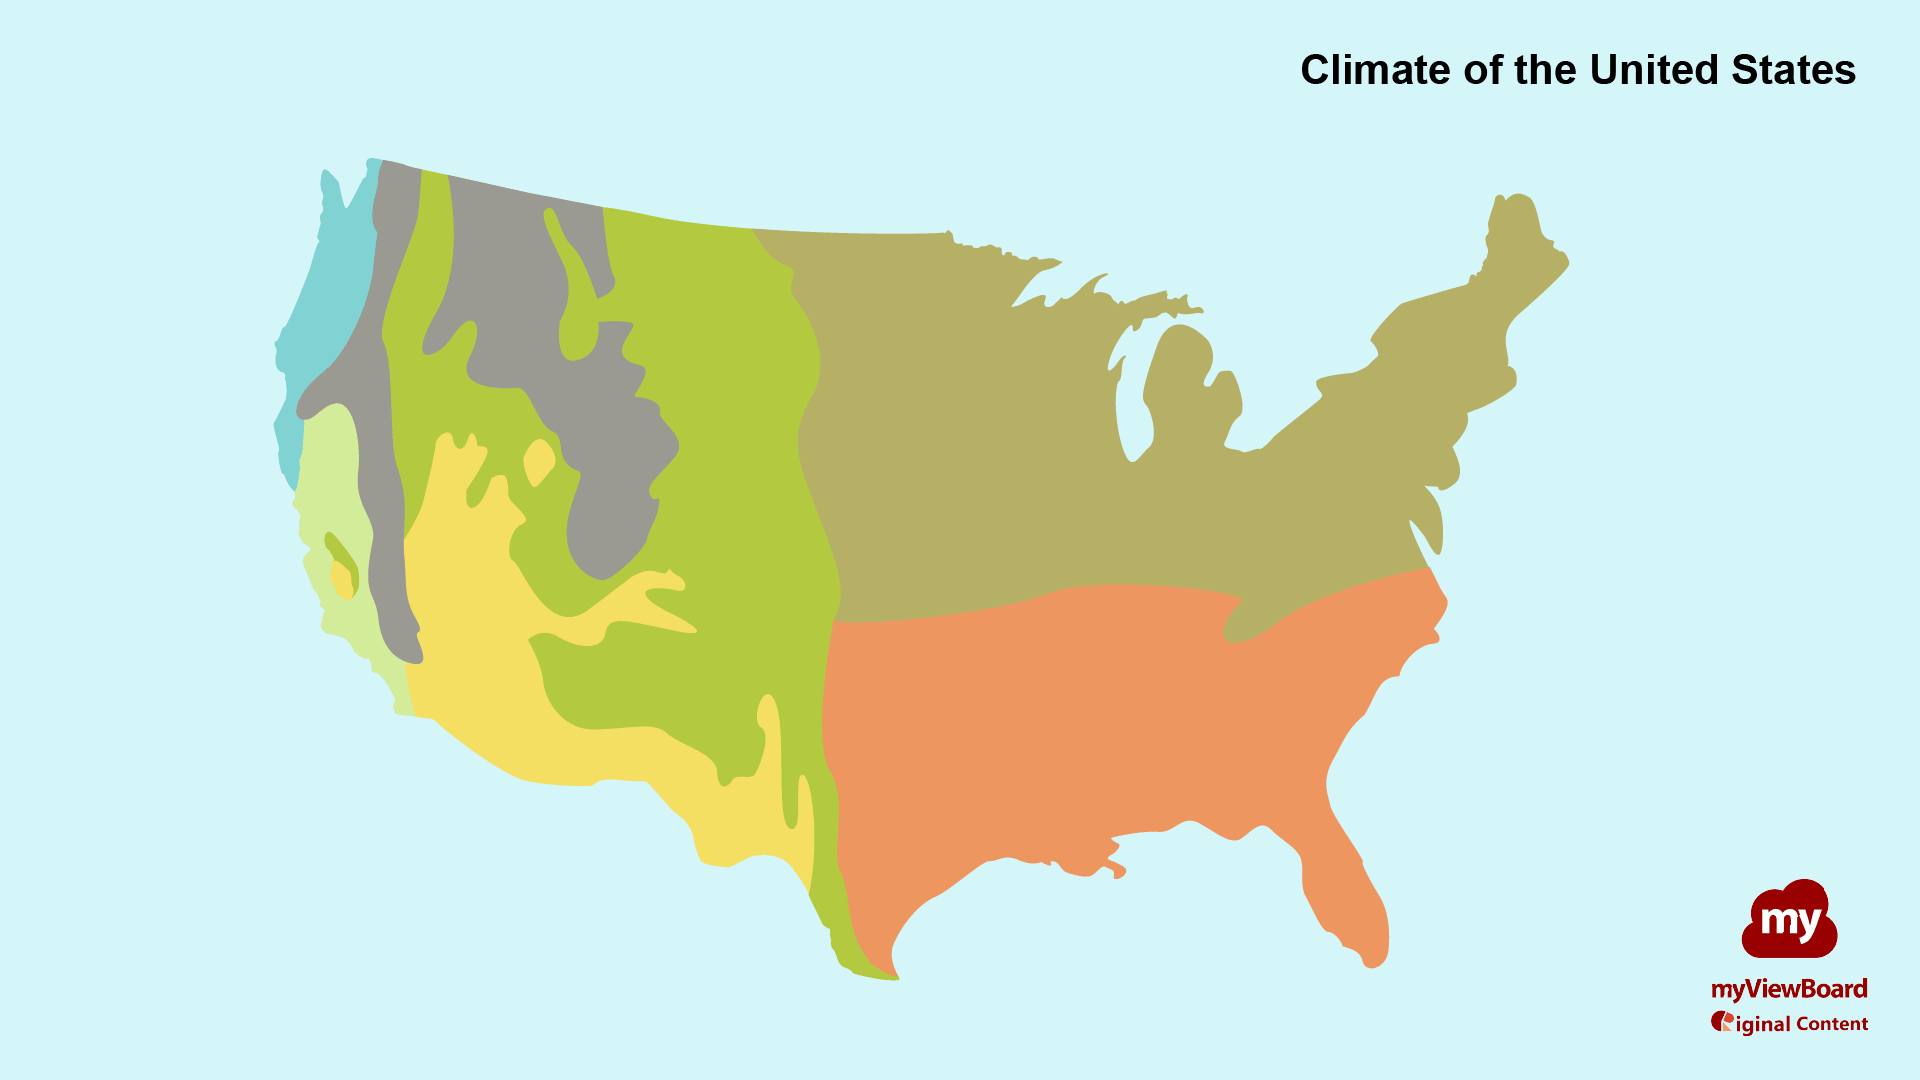 OCBnew thumbnail Climate of the United States logo Full HD.png